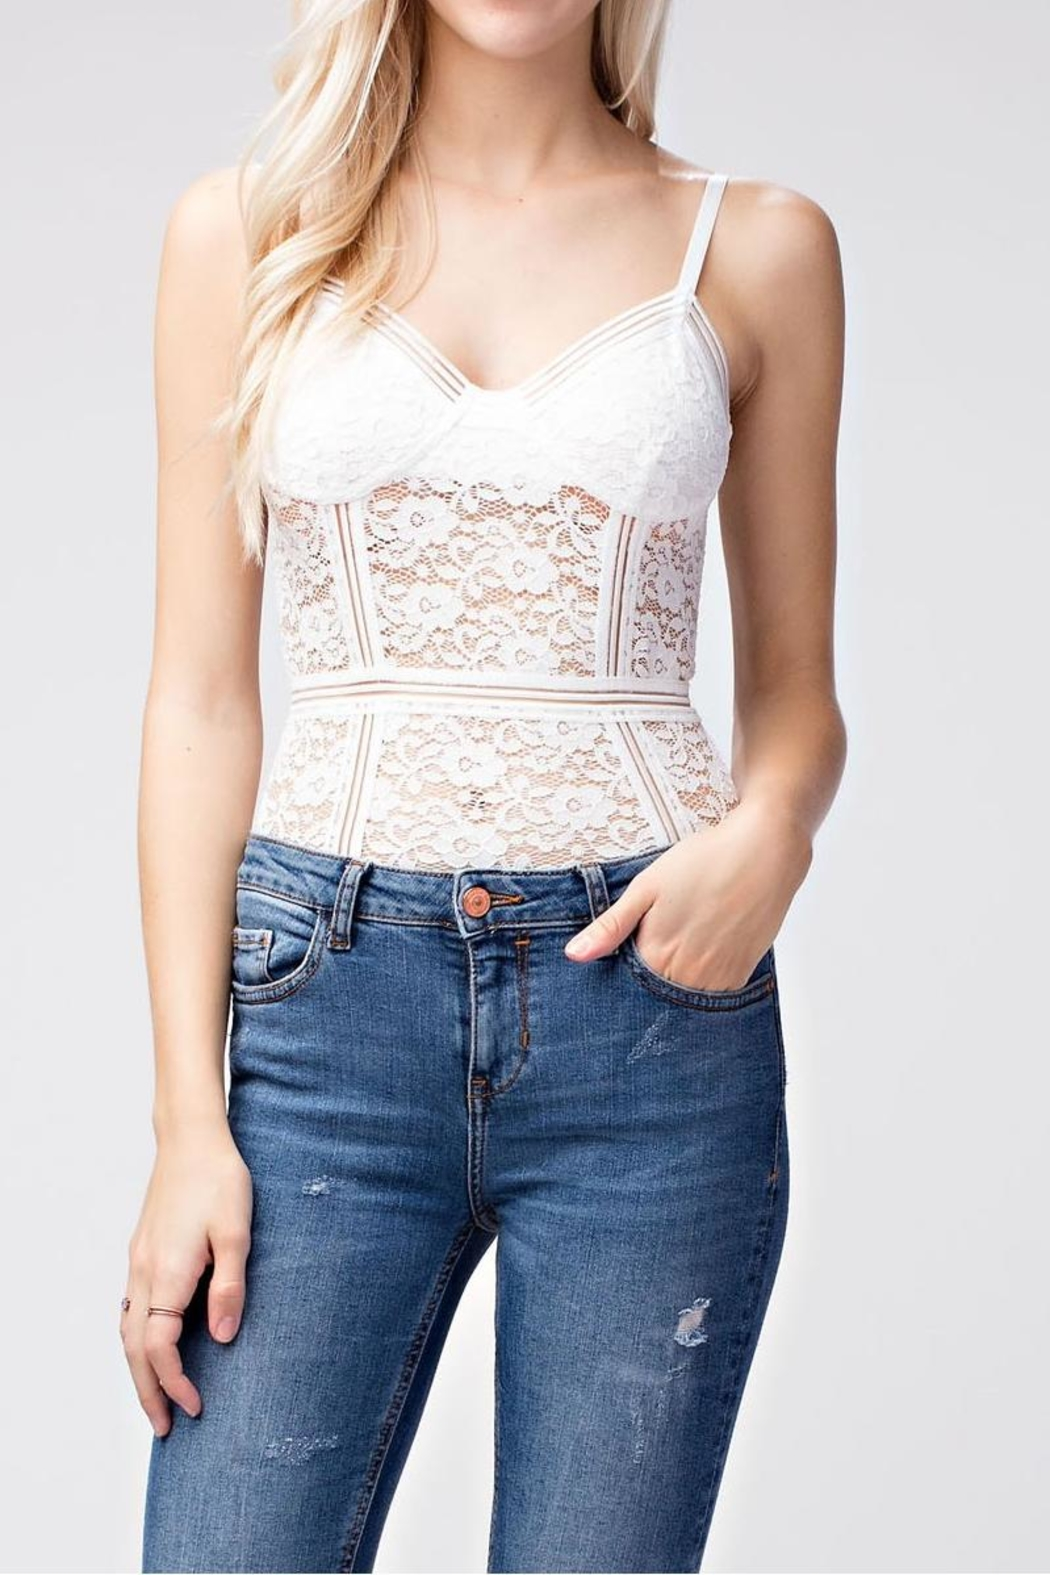 Wild Honey Lace Bodysuit - Main Image